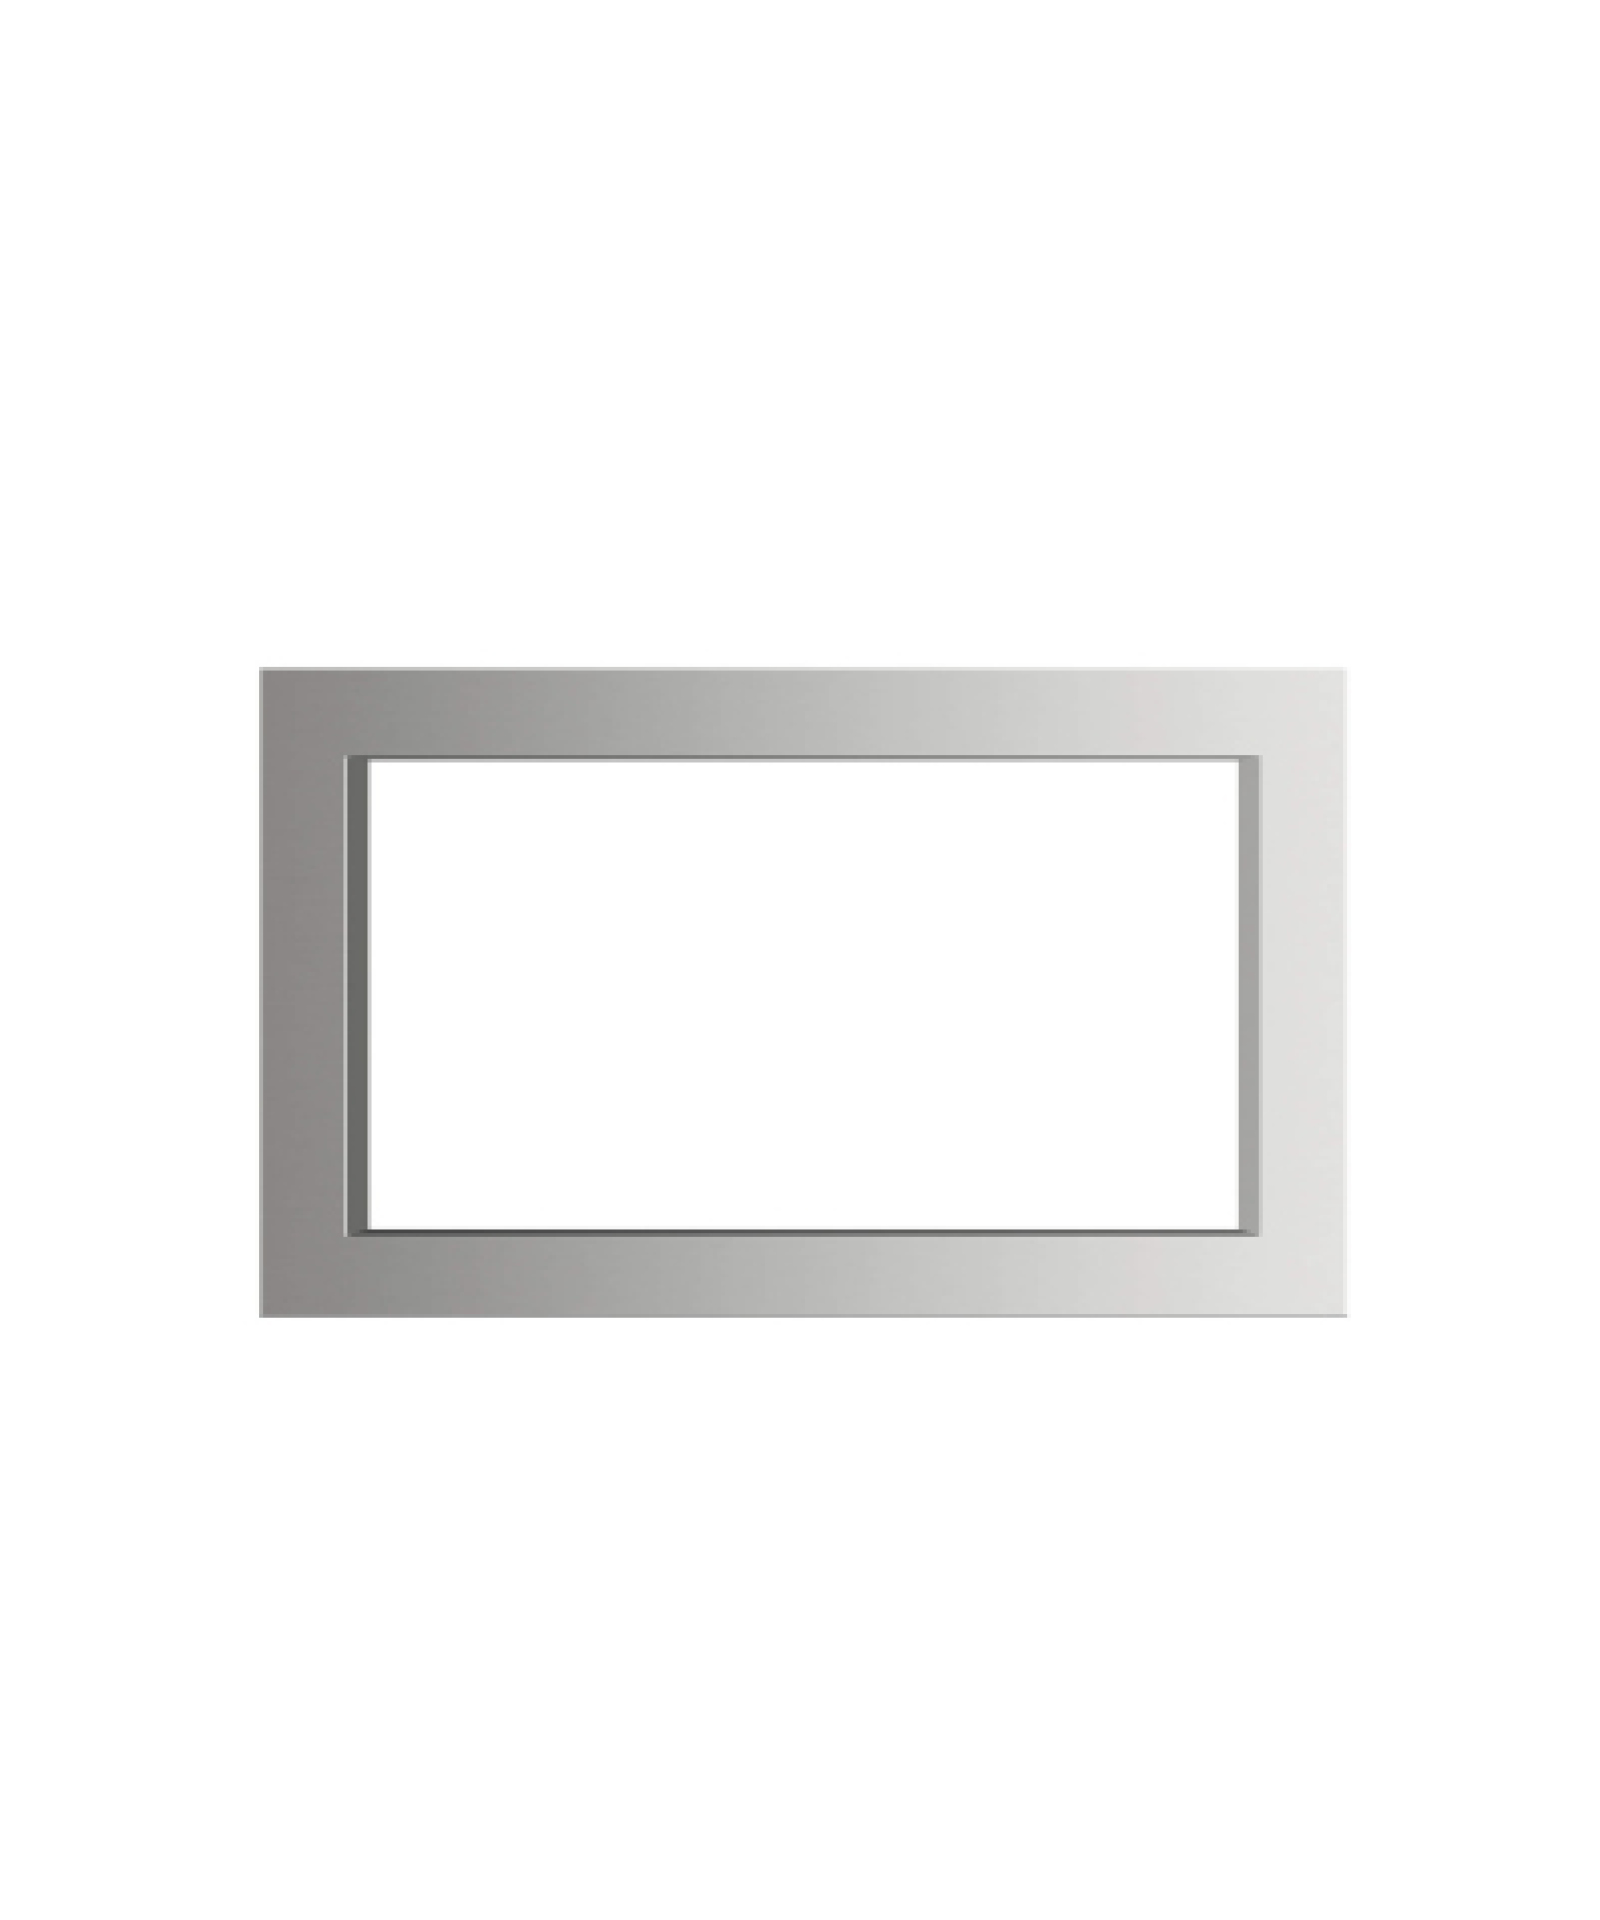 Fisher and Paykel Convection Microwave Trim Kit